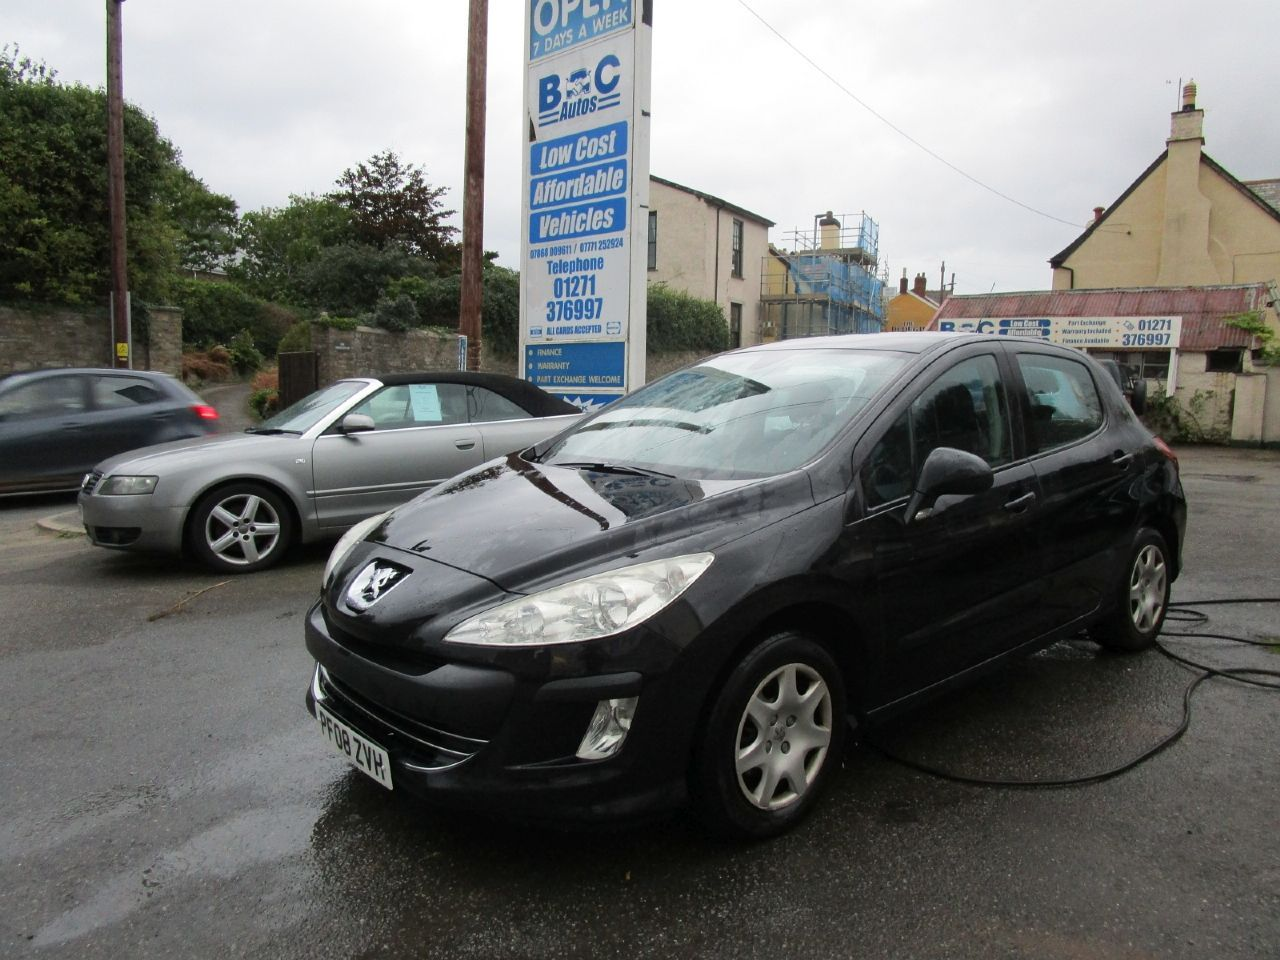 peugeot 308 s hdi 110 for sale in barnstaple b c autos sw